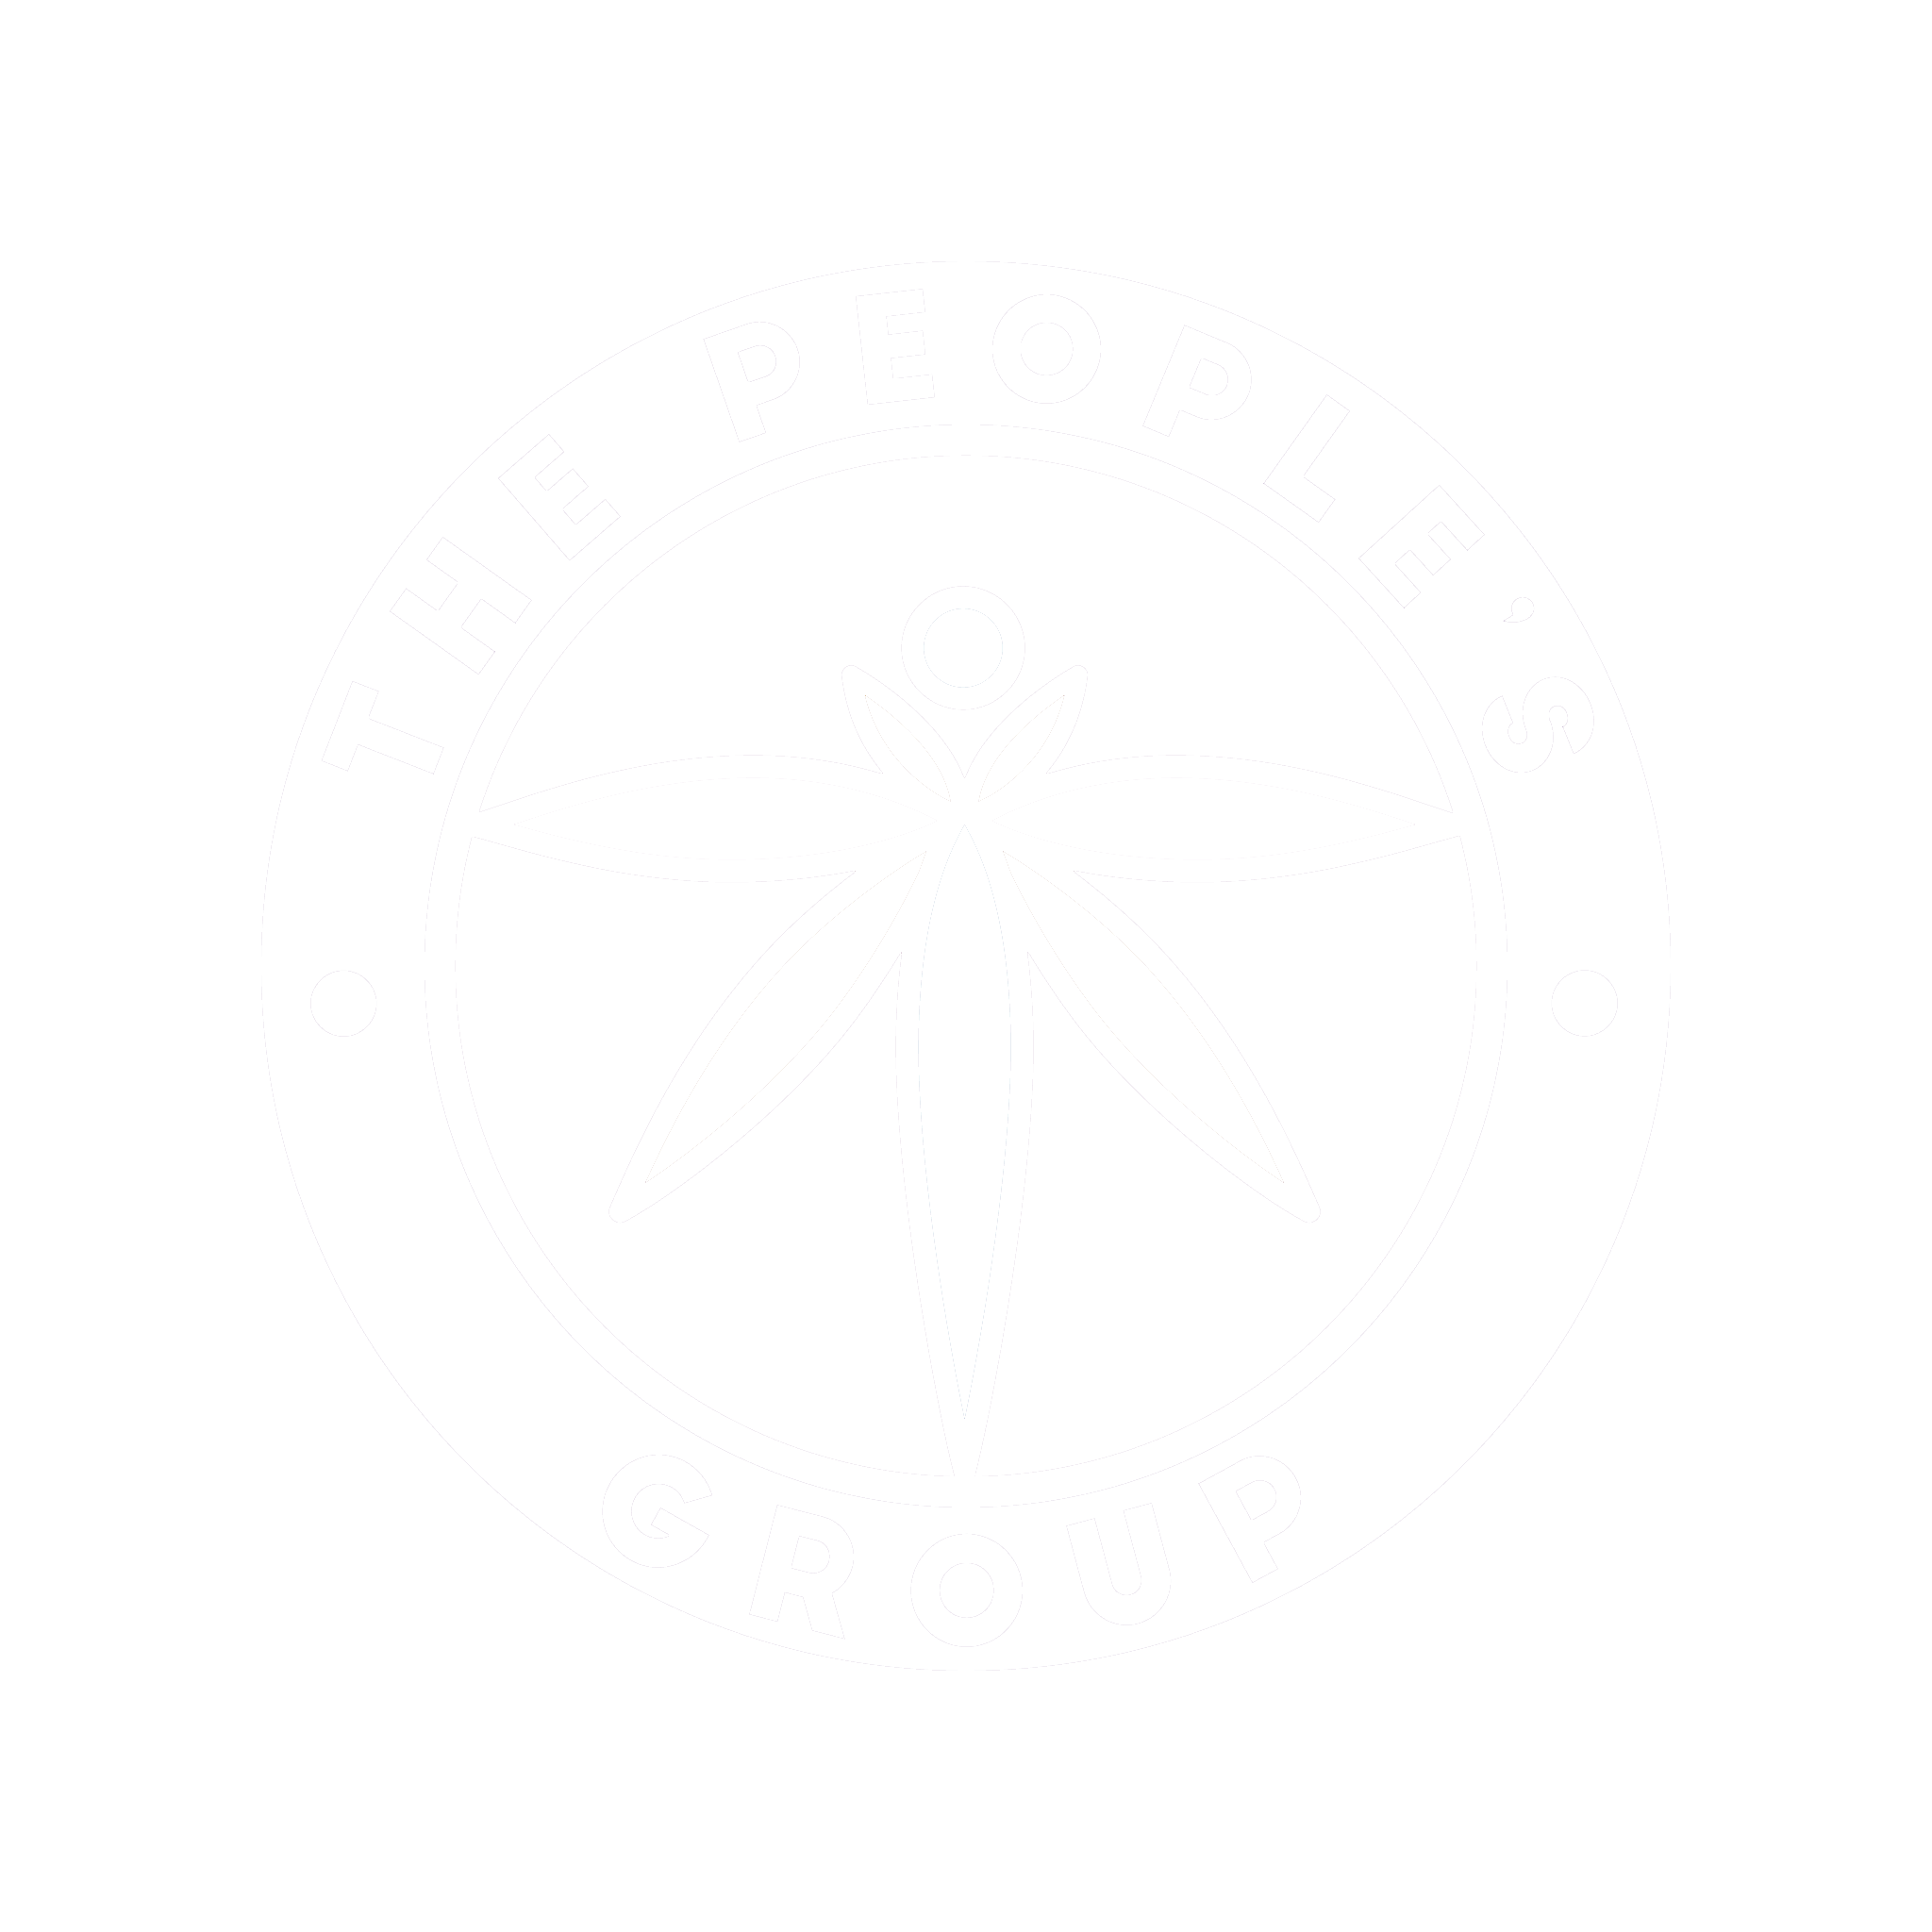 The People's Group